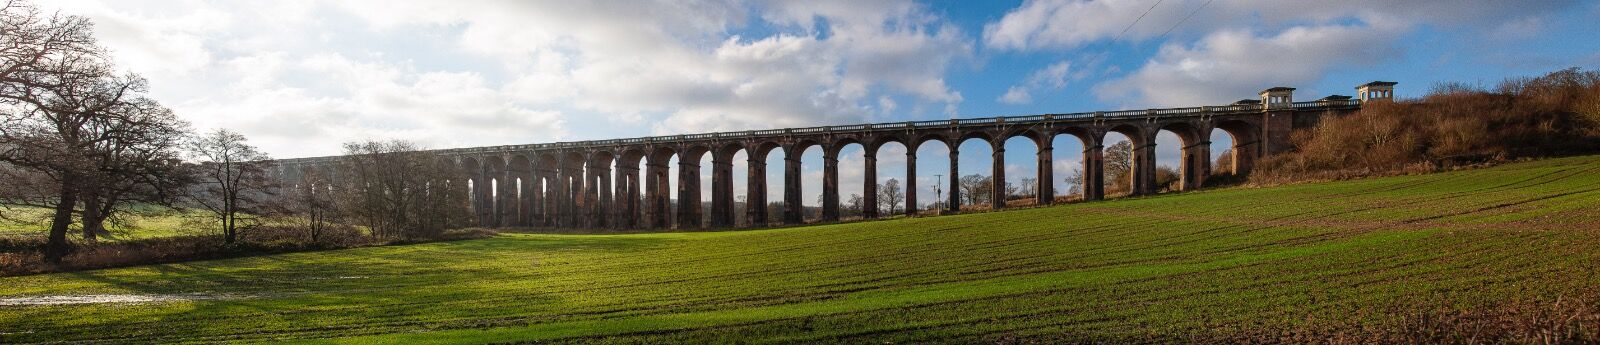 The Ouse Valley (Balcombe) Viaduct.